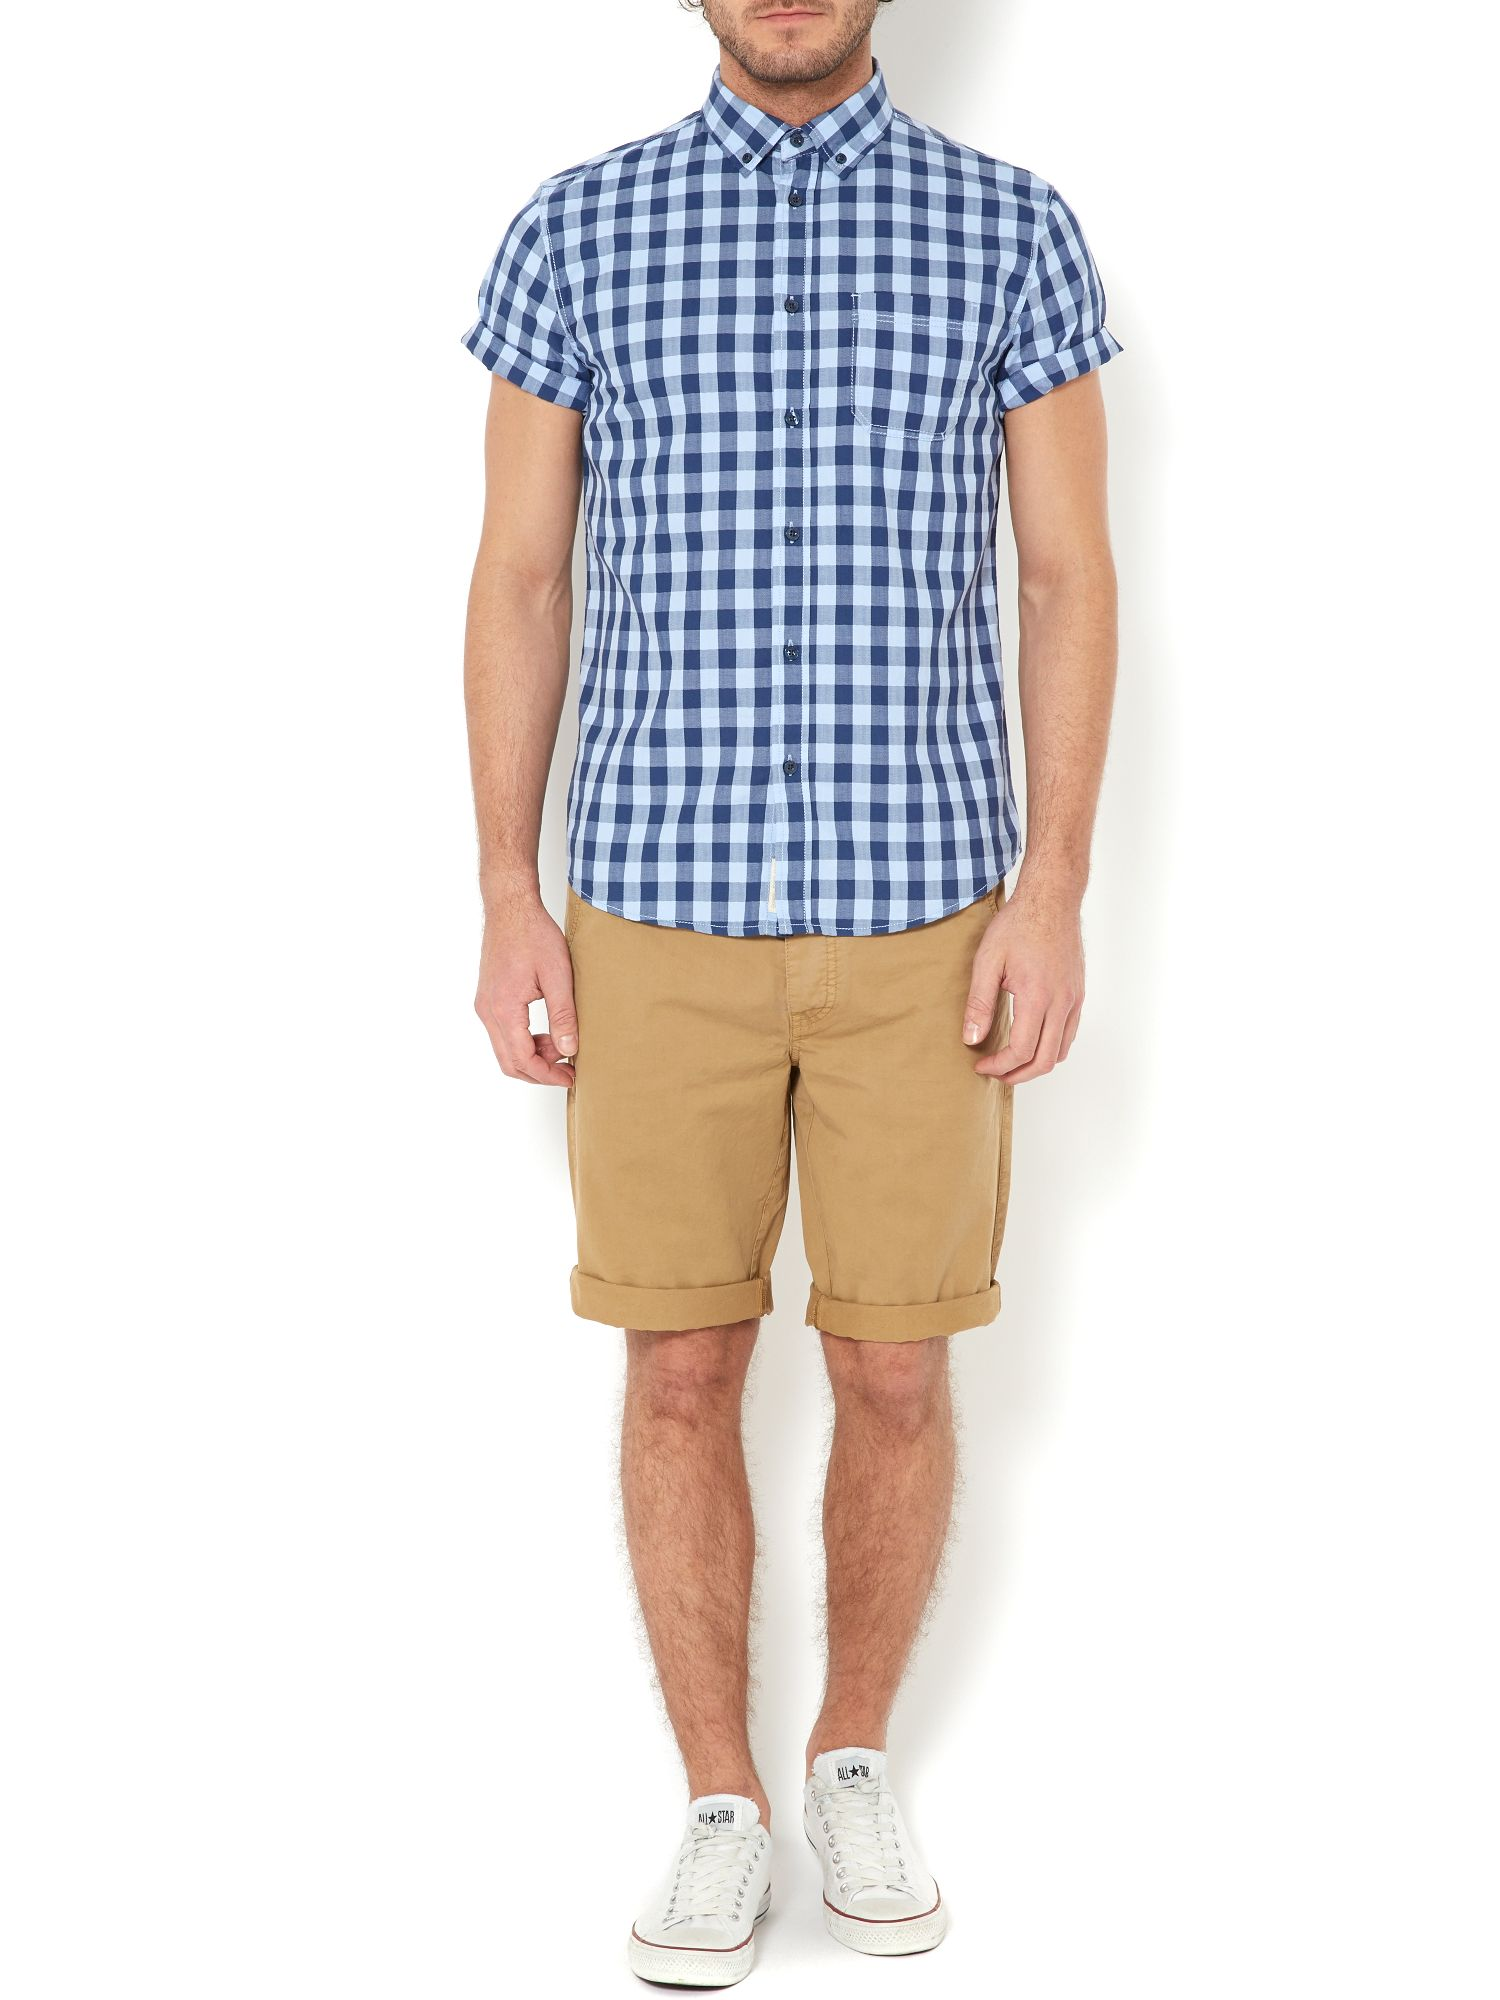 walton gingham short sleeved shirt